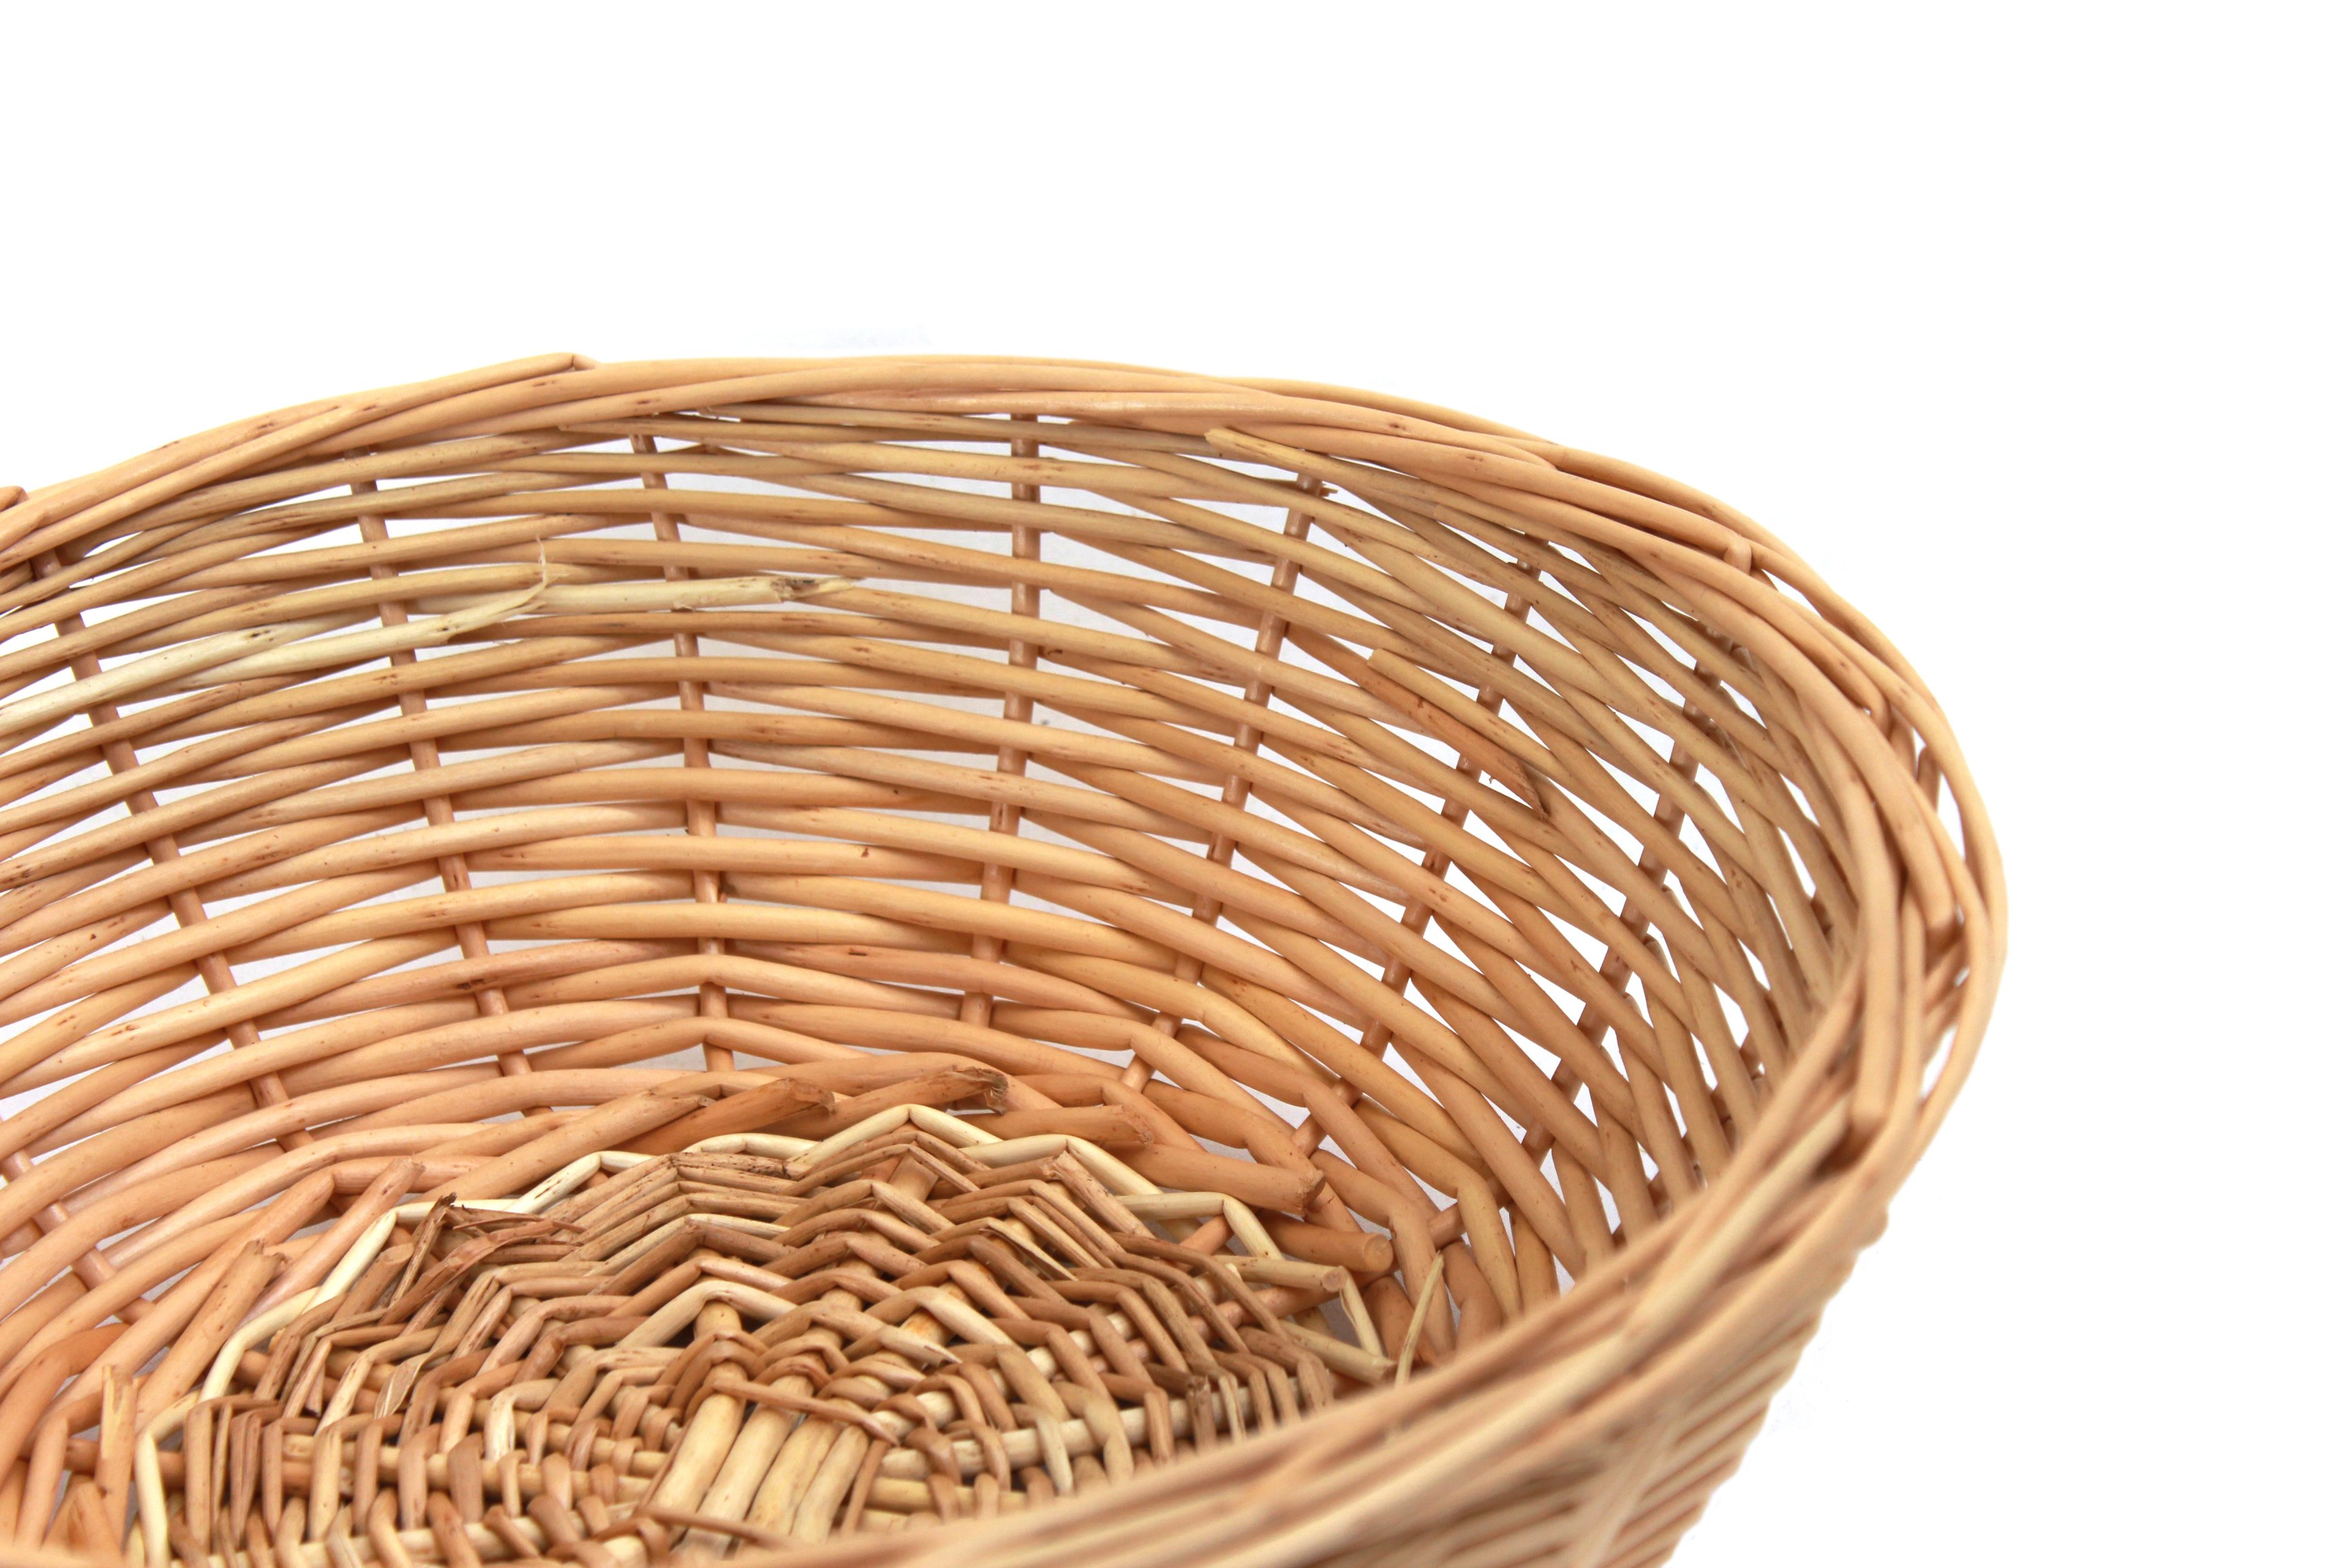 Round  Bread Baskets close